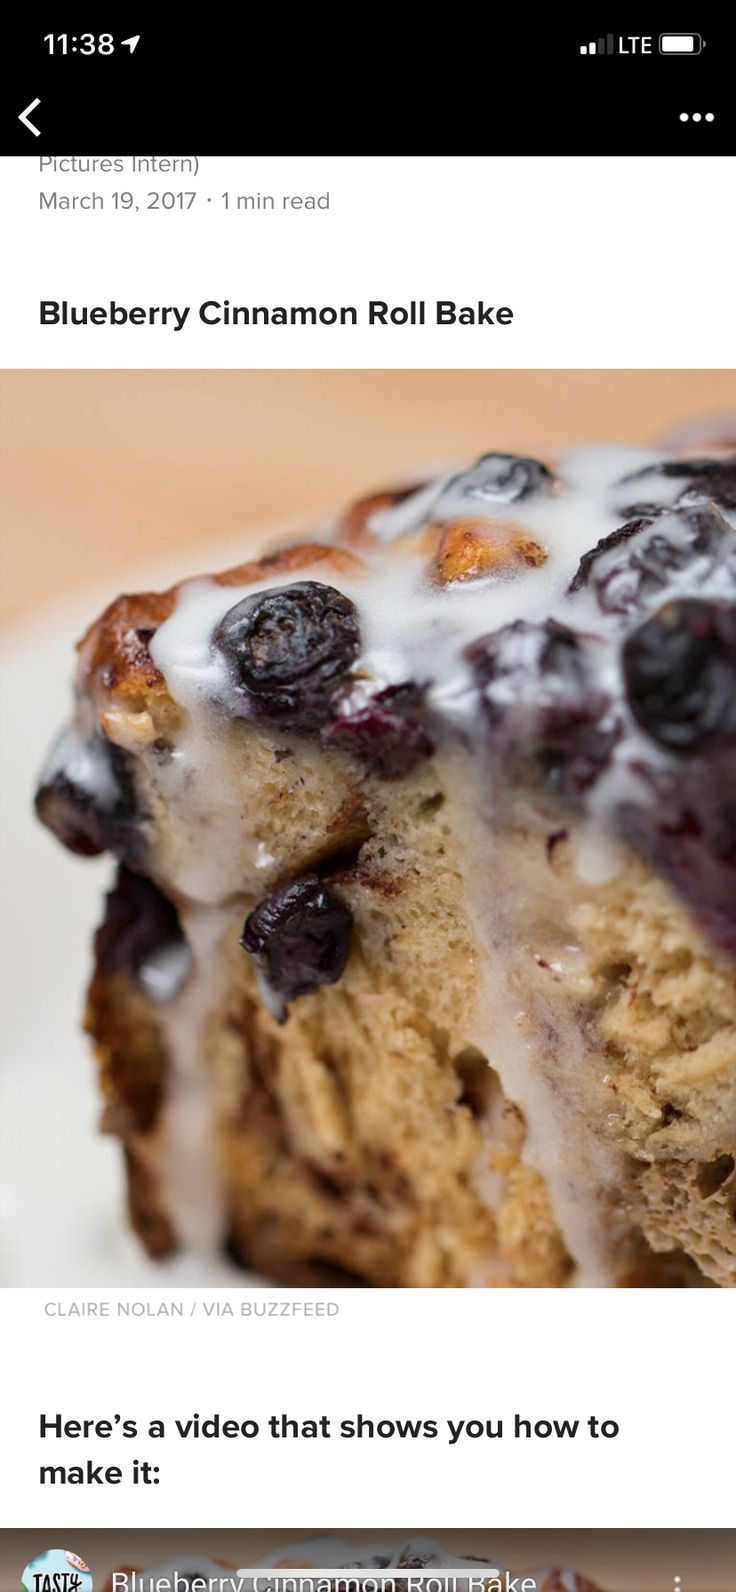 Blueberry Cinnamon Roll Bake Cinnamon roll bake